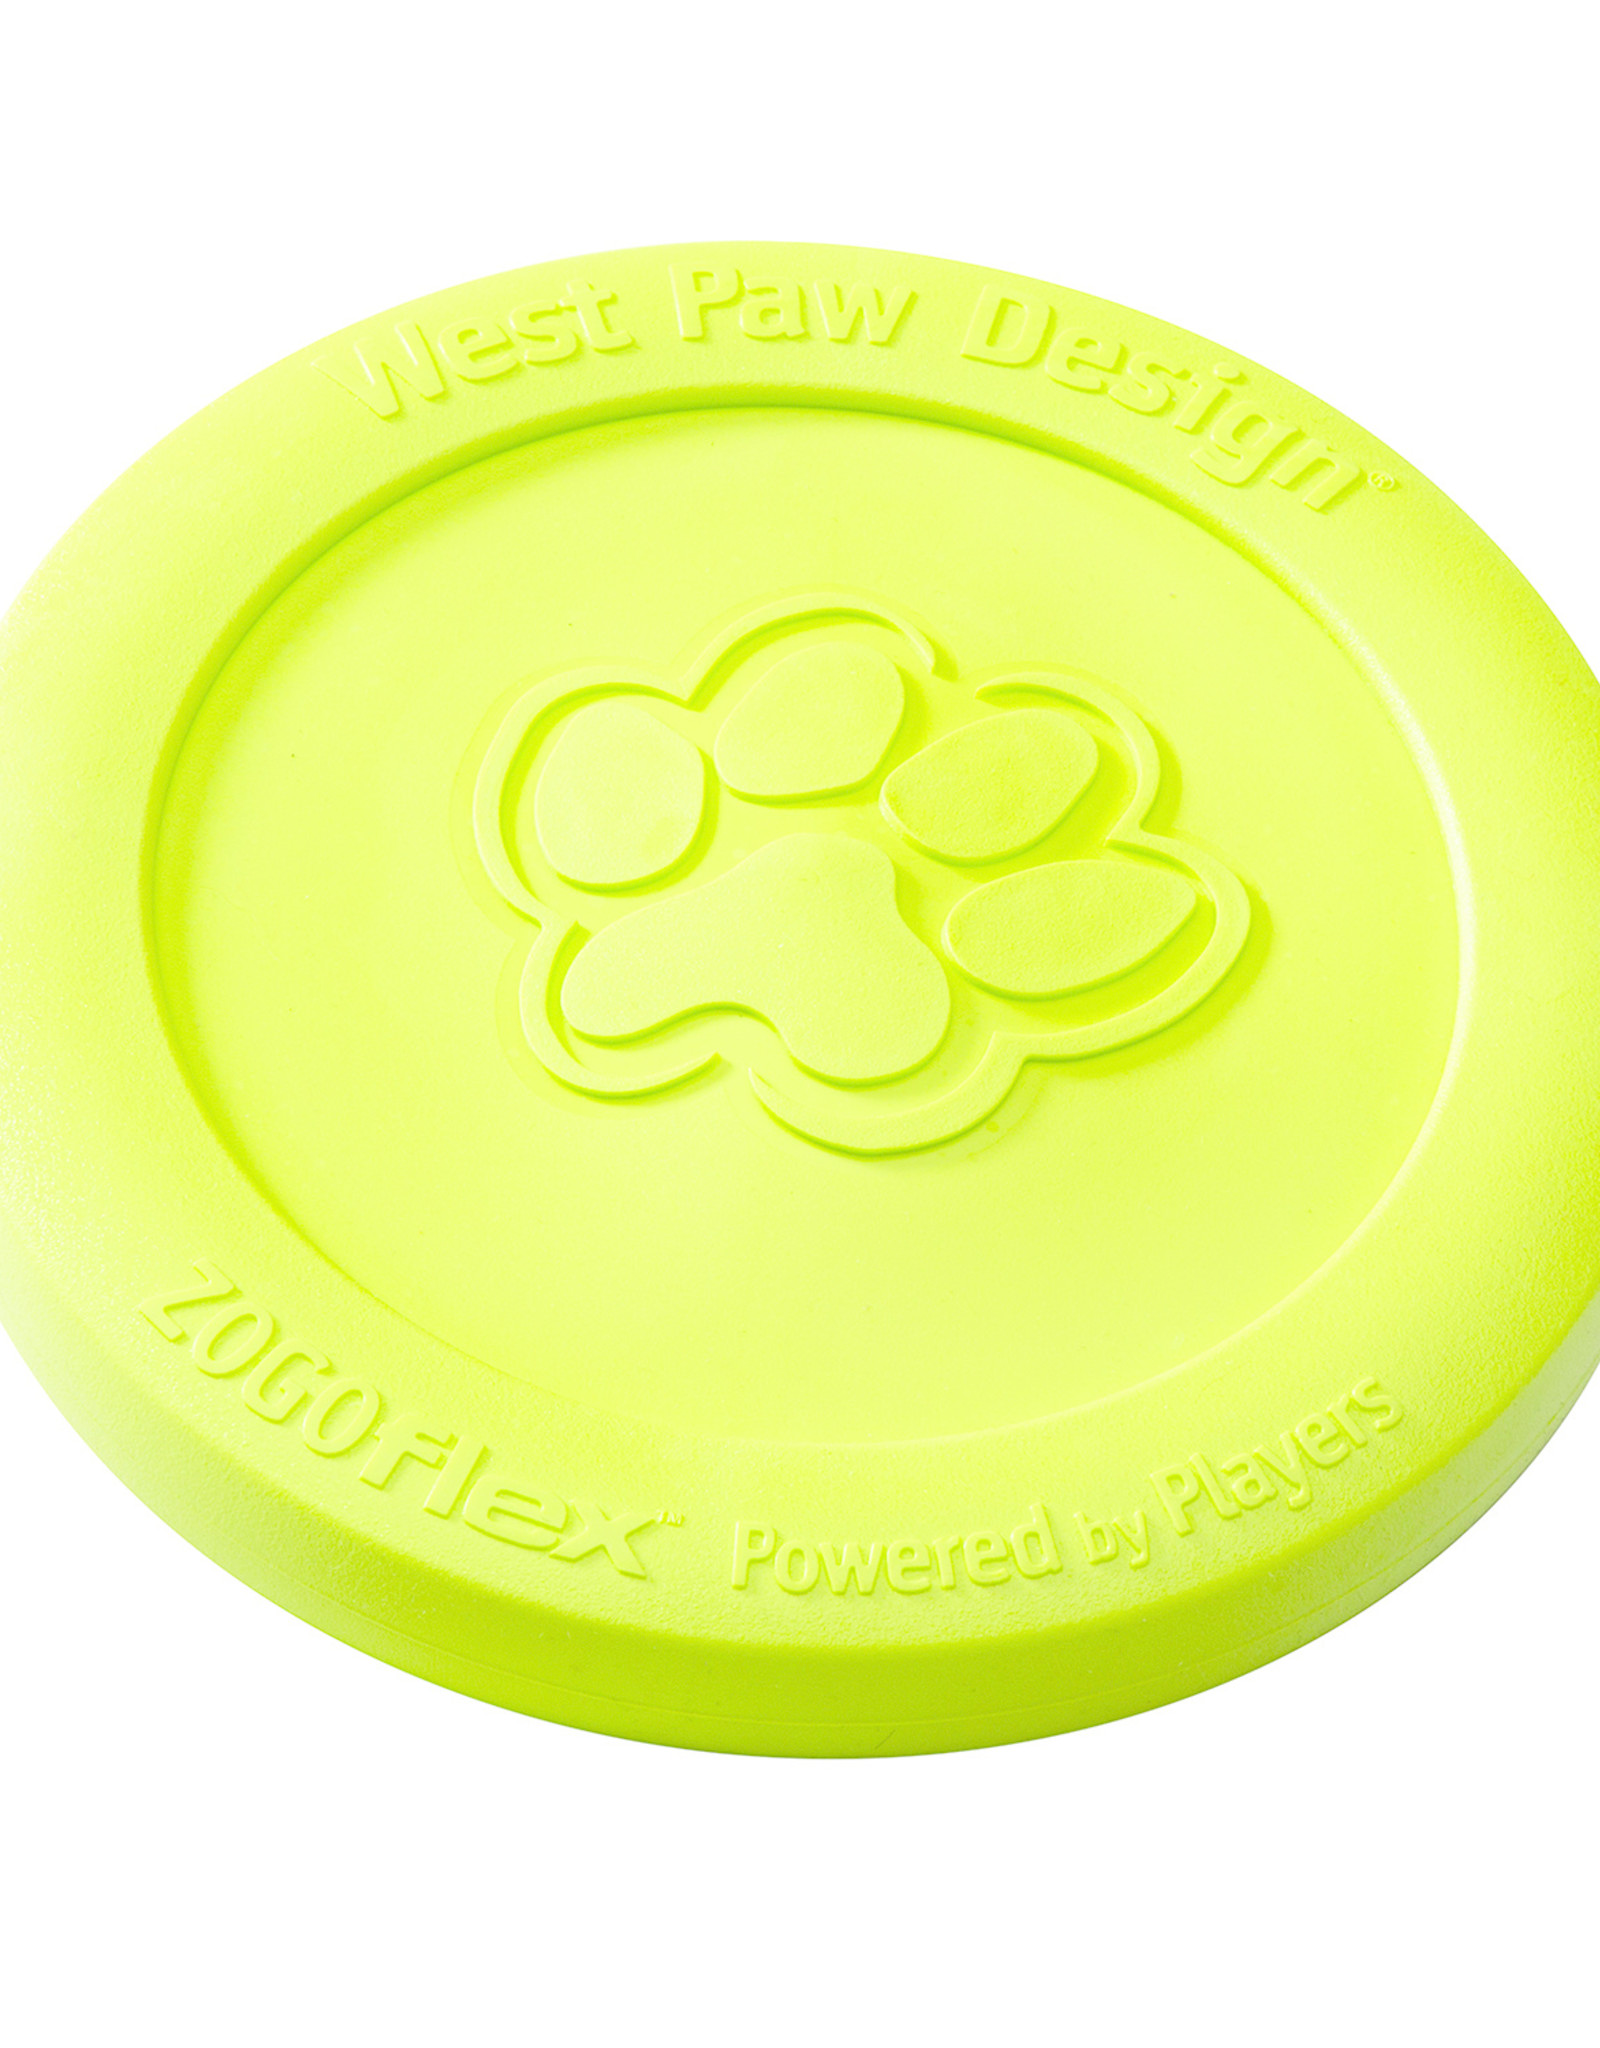 West Paw Design West Paw Zisc